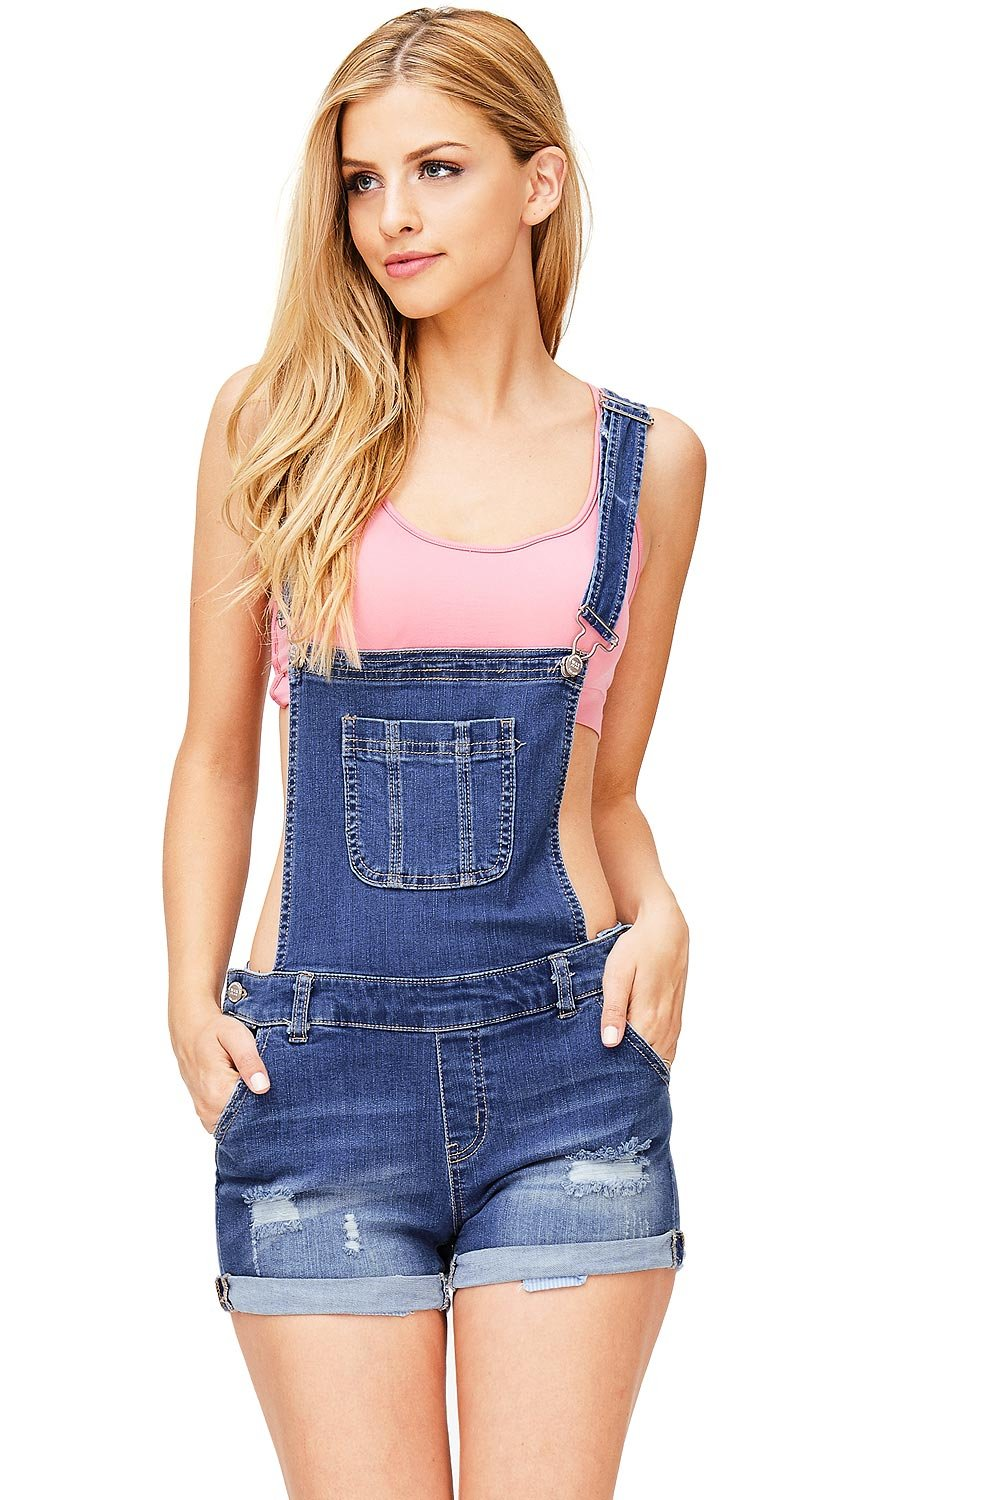 Wax Women's Juniors Cute Denim Overall Shorts (L, Dark Denim)